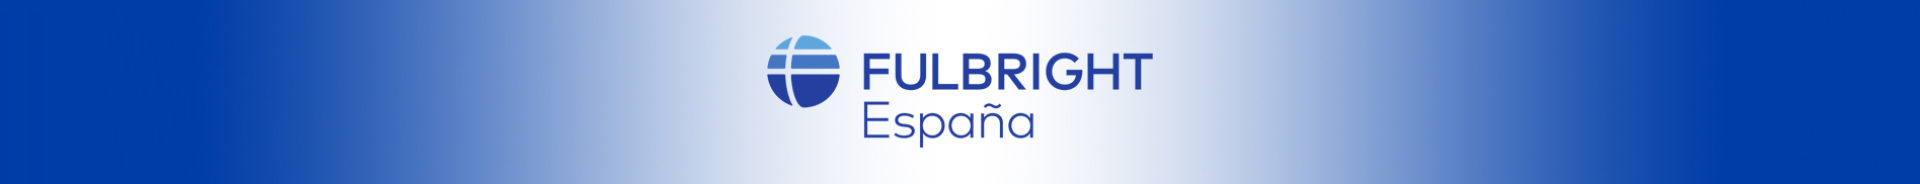 El blog de Fulbright